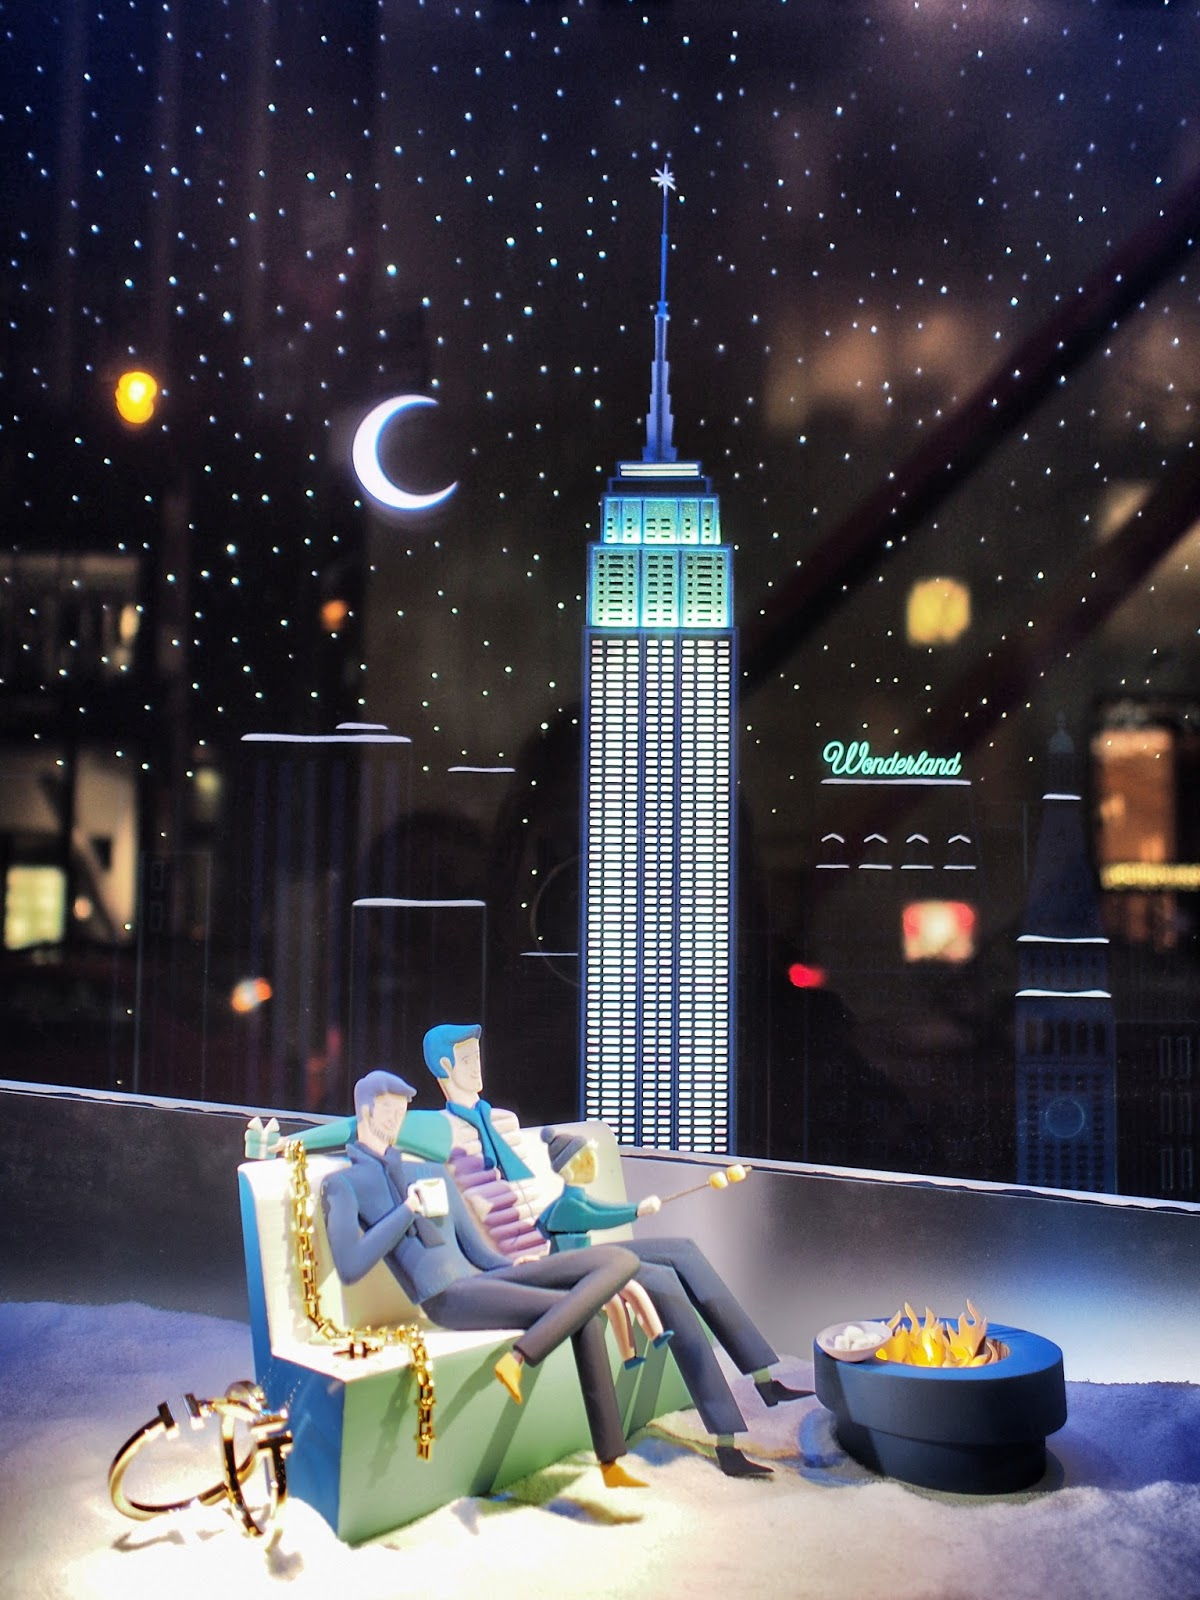 City S'Mores #citysmores #holidaywindows #5thavenuewindows #NYC  #holidays #besttimeoftheyear #nyc ©2014 Nancy Lundebjerg